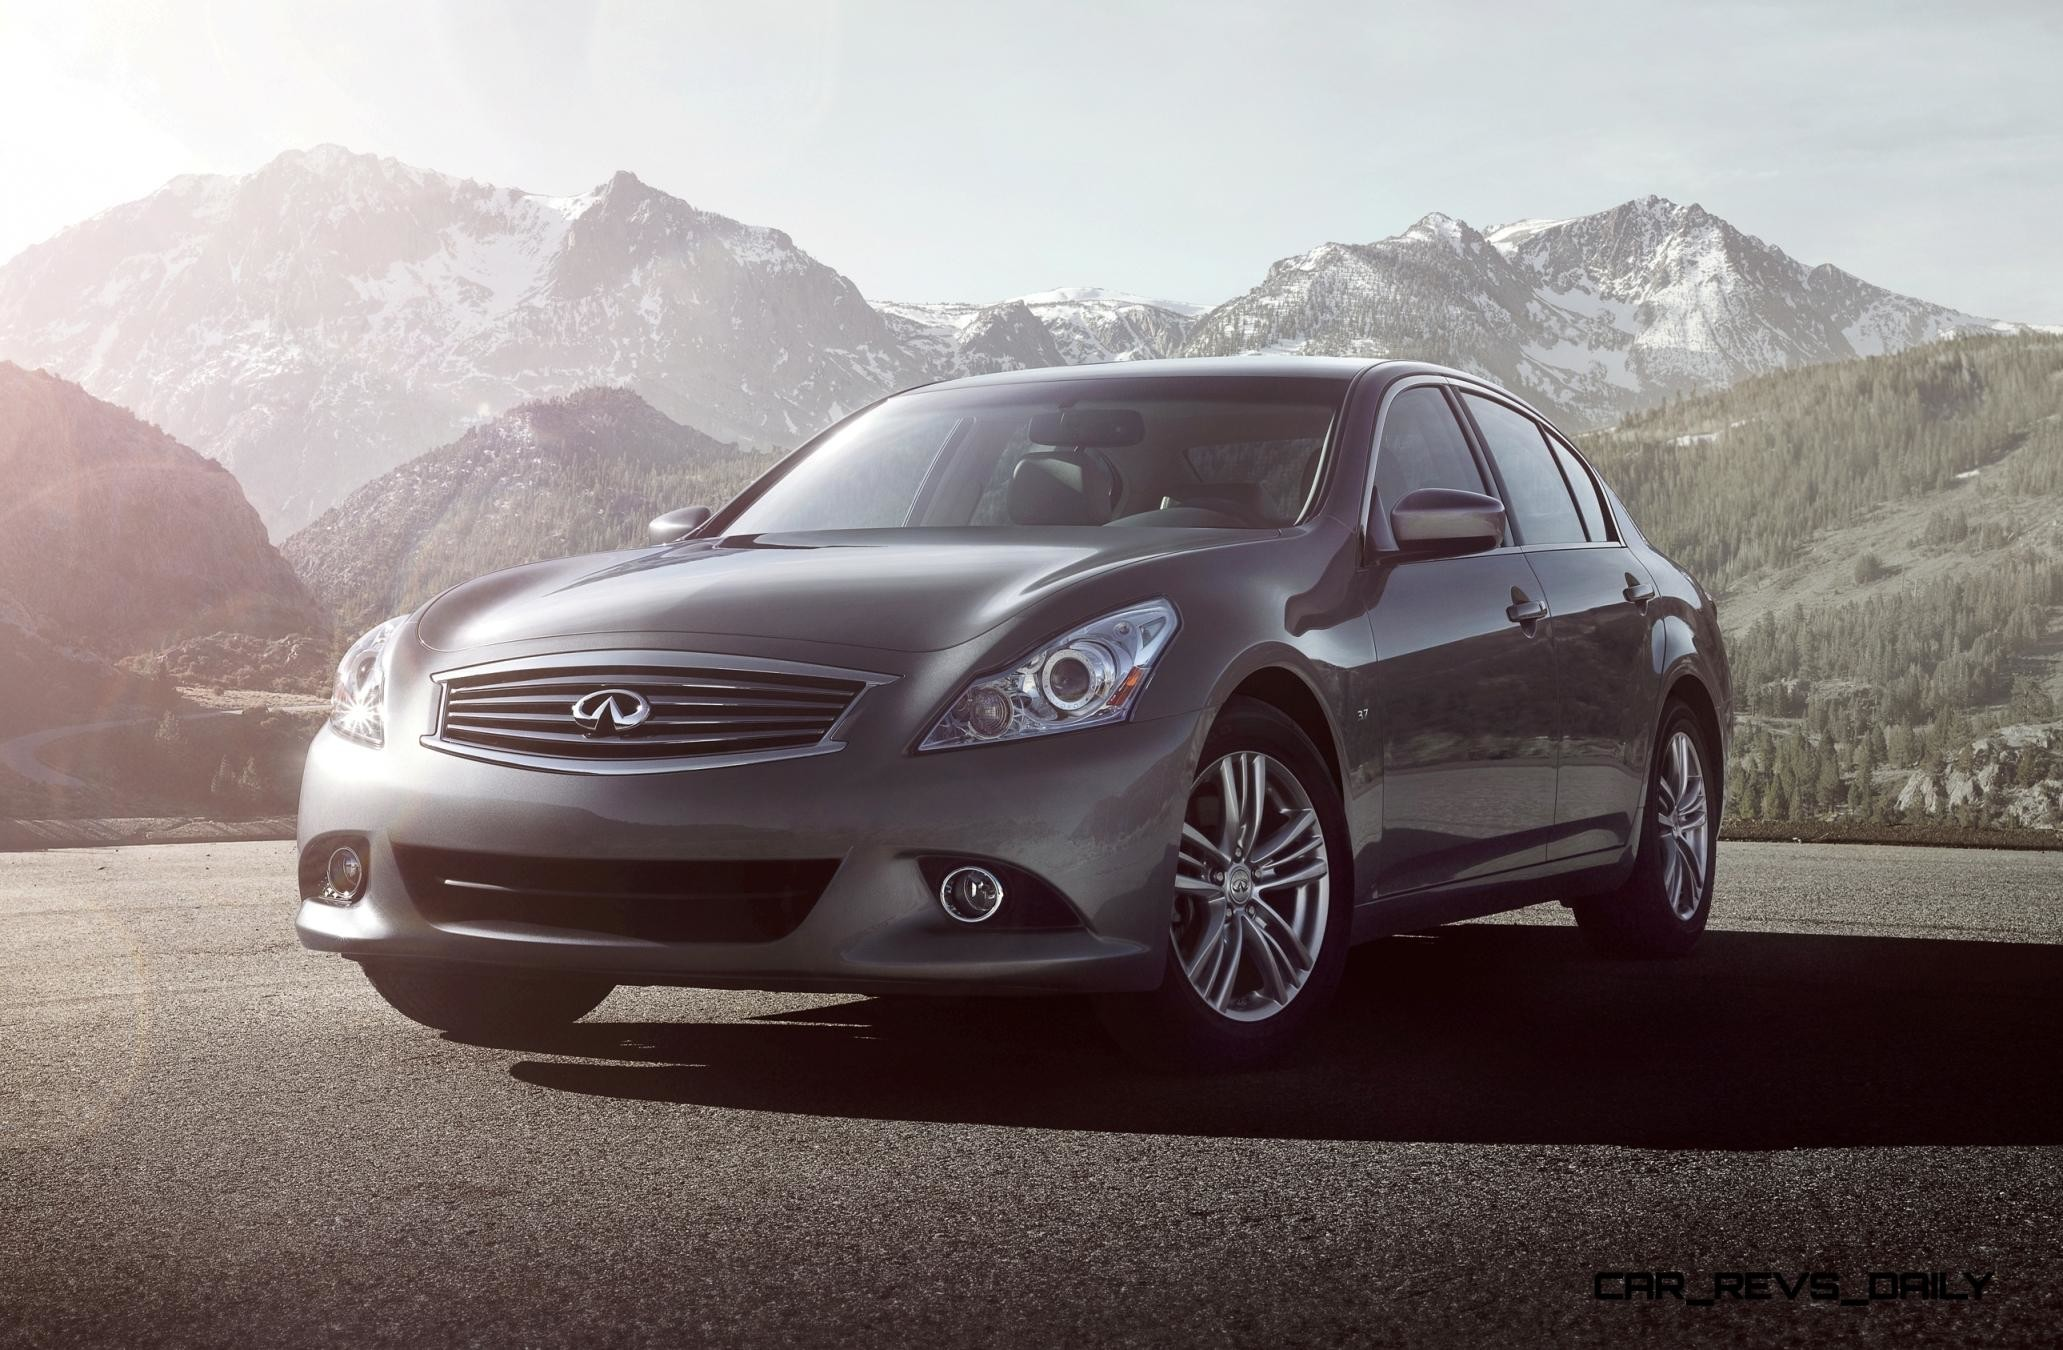 2560x1440 Preview Wallpaper Infiniti, G35, G37, Black, Nature, Side View  2560x1440